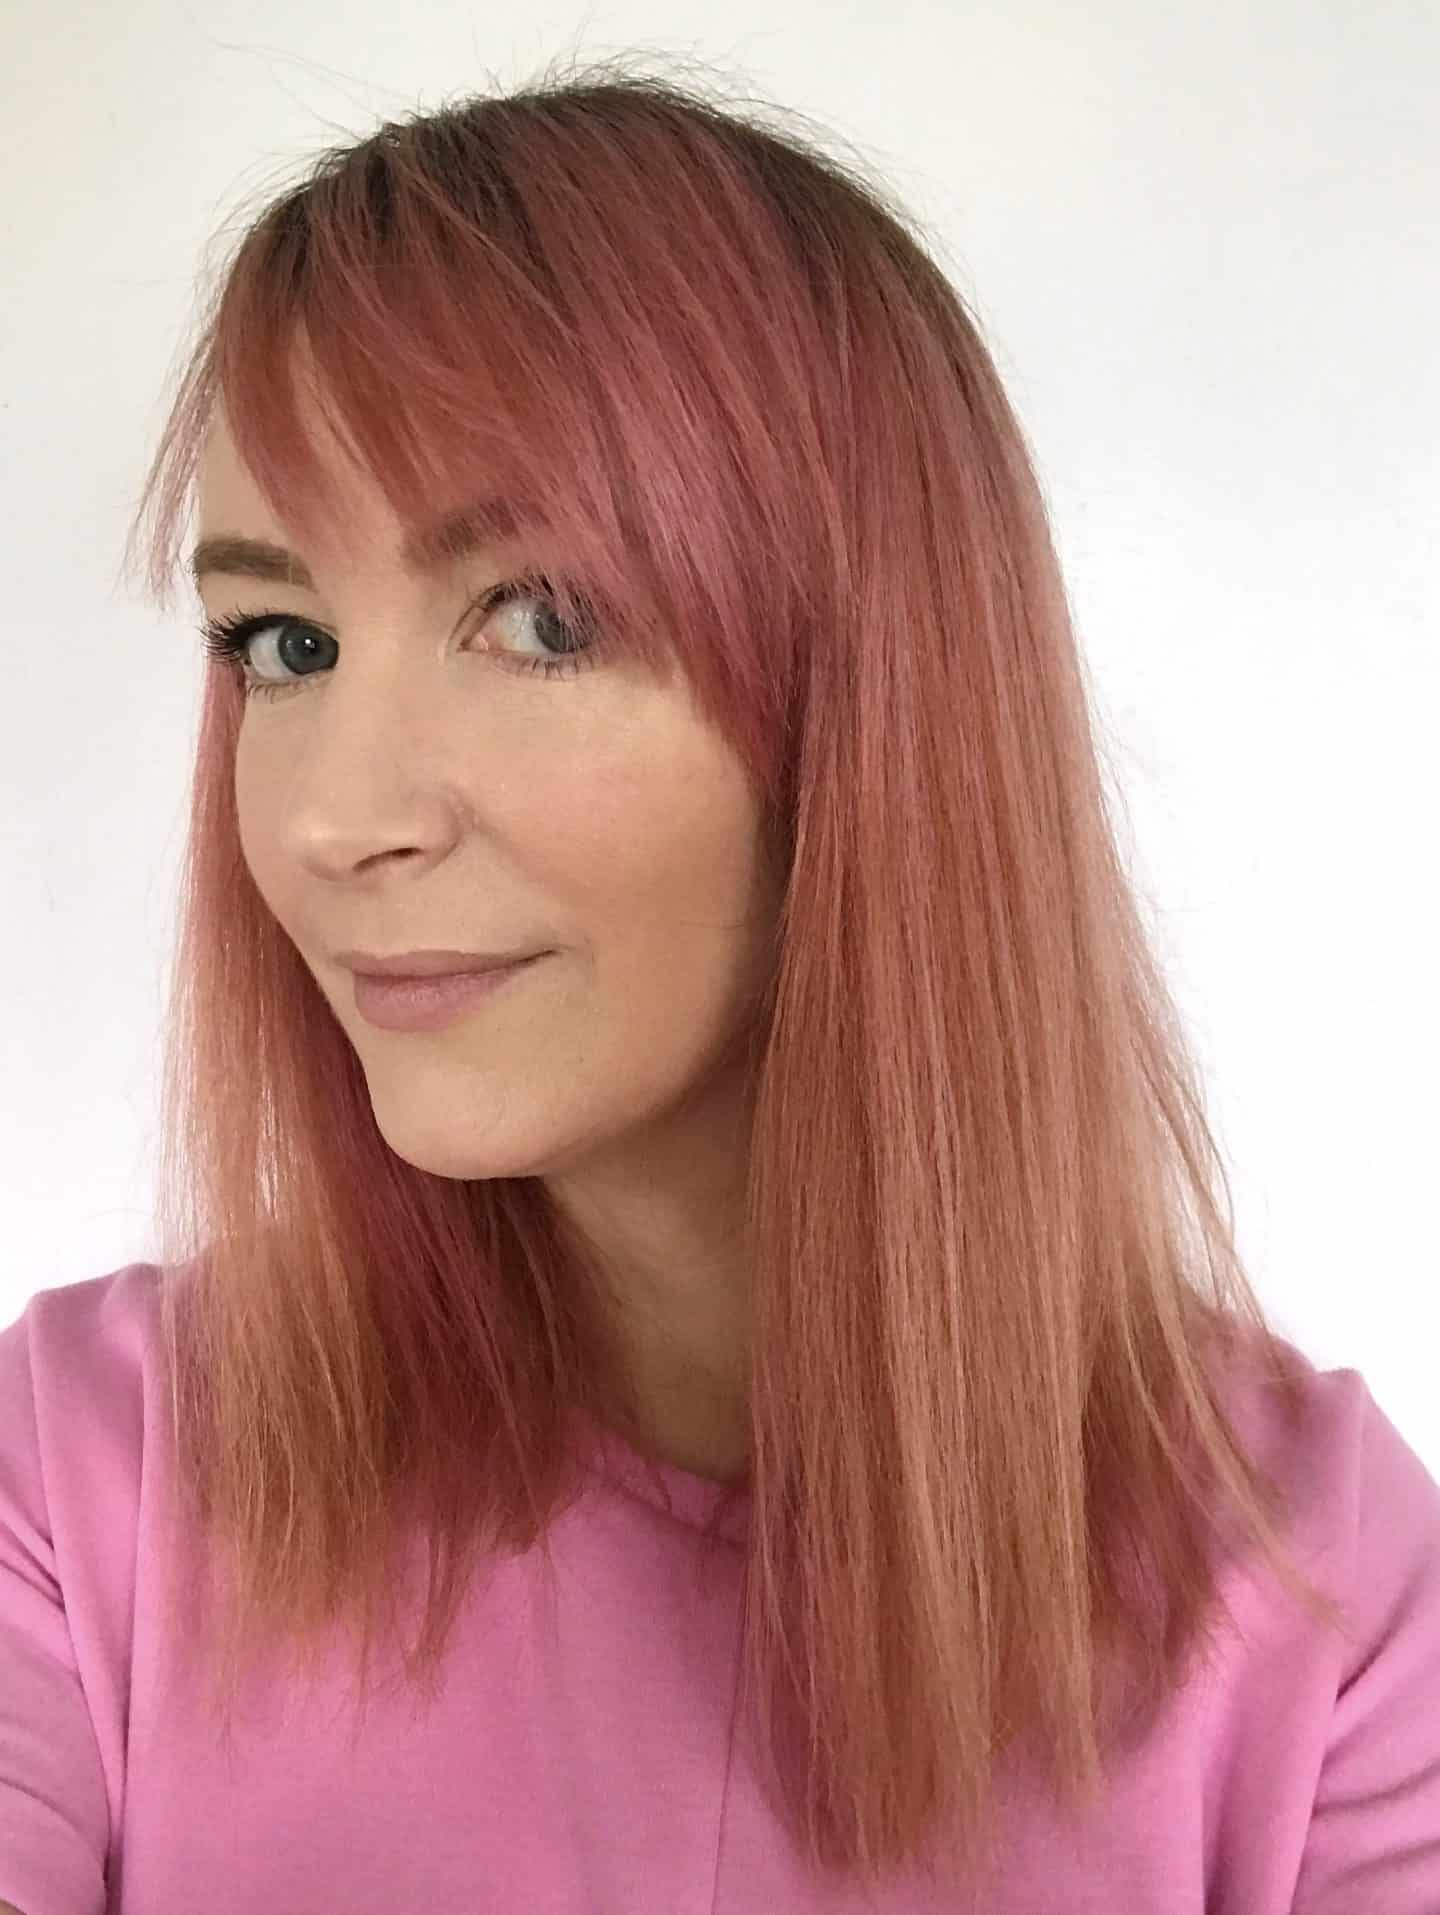 Hair after using infuse My. colour Ruby Shampoo for two washes